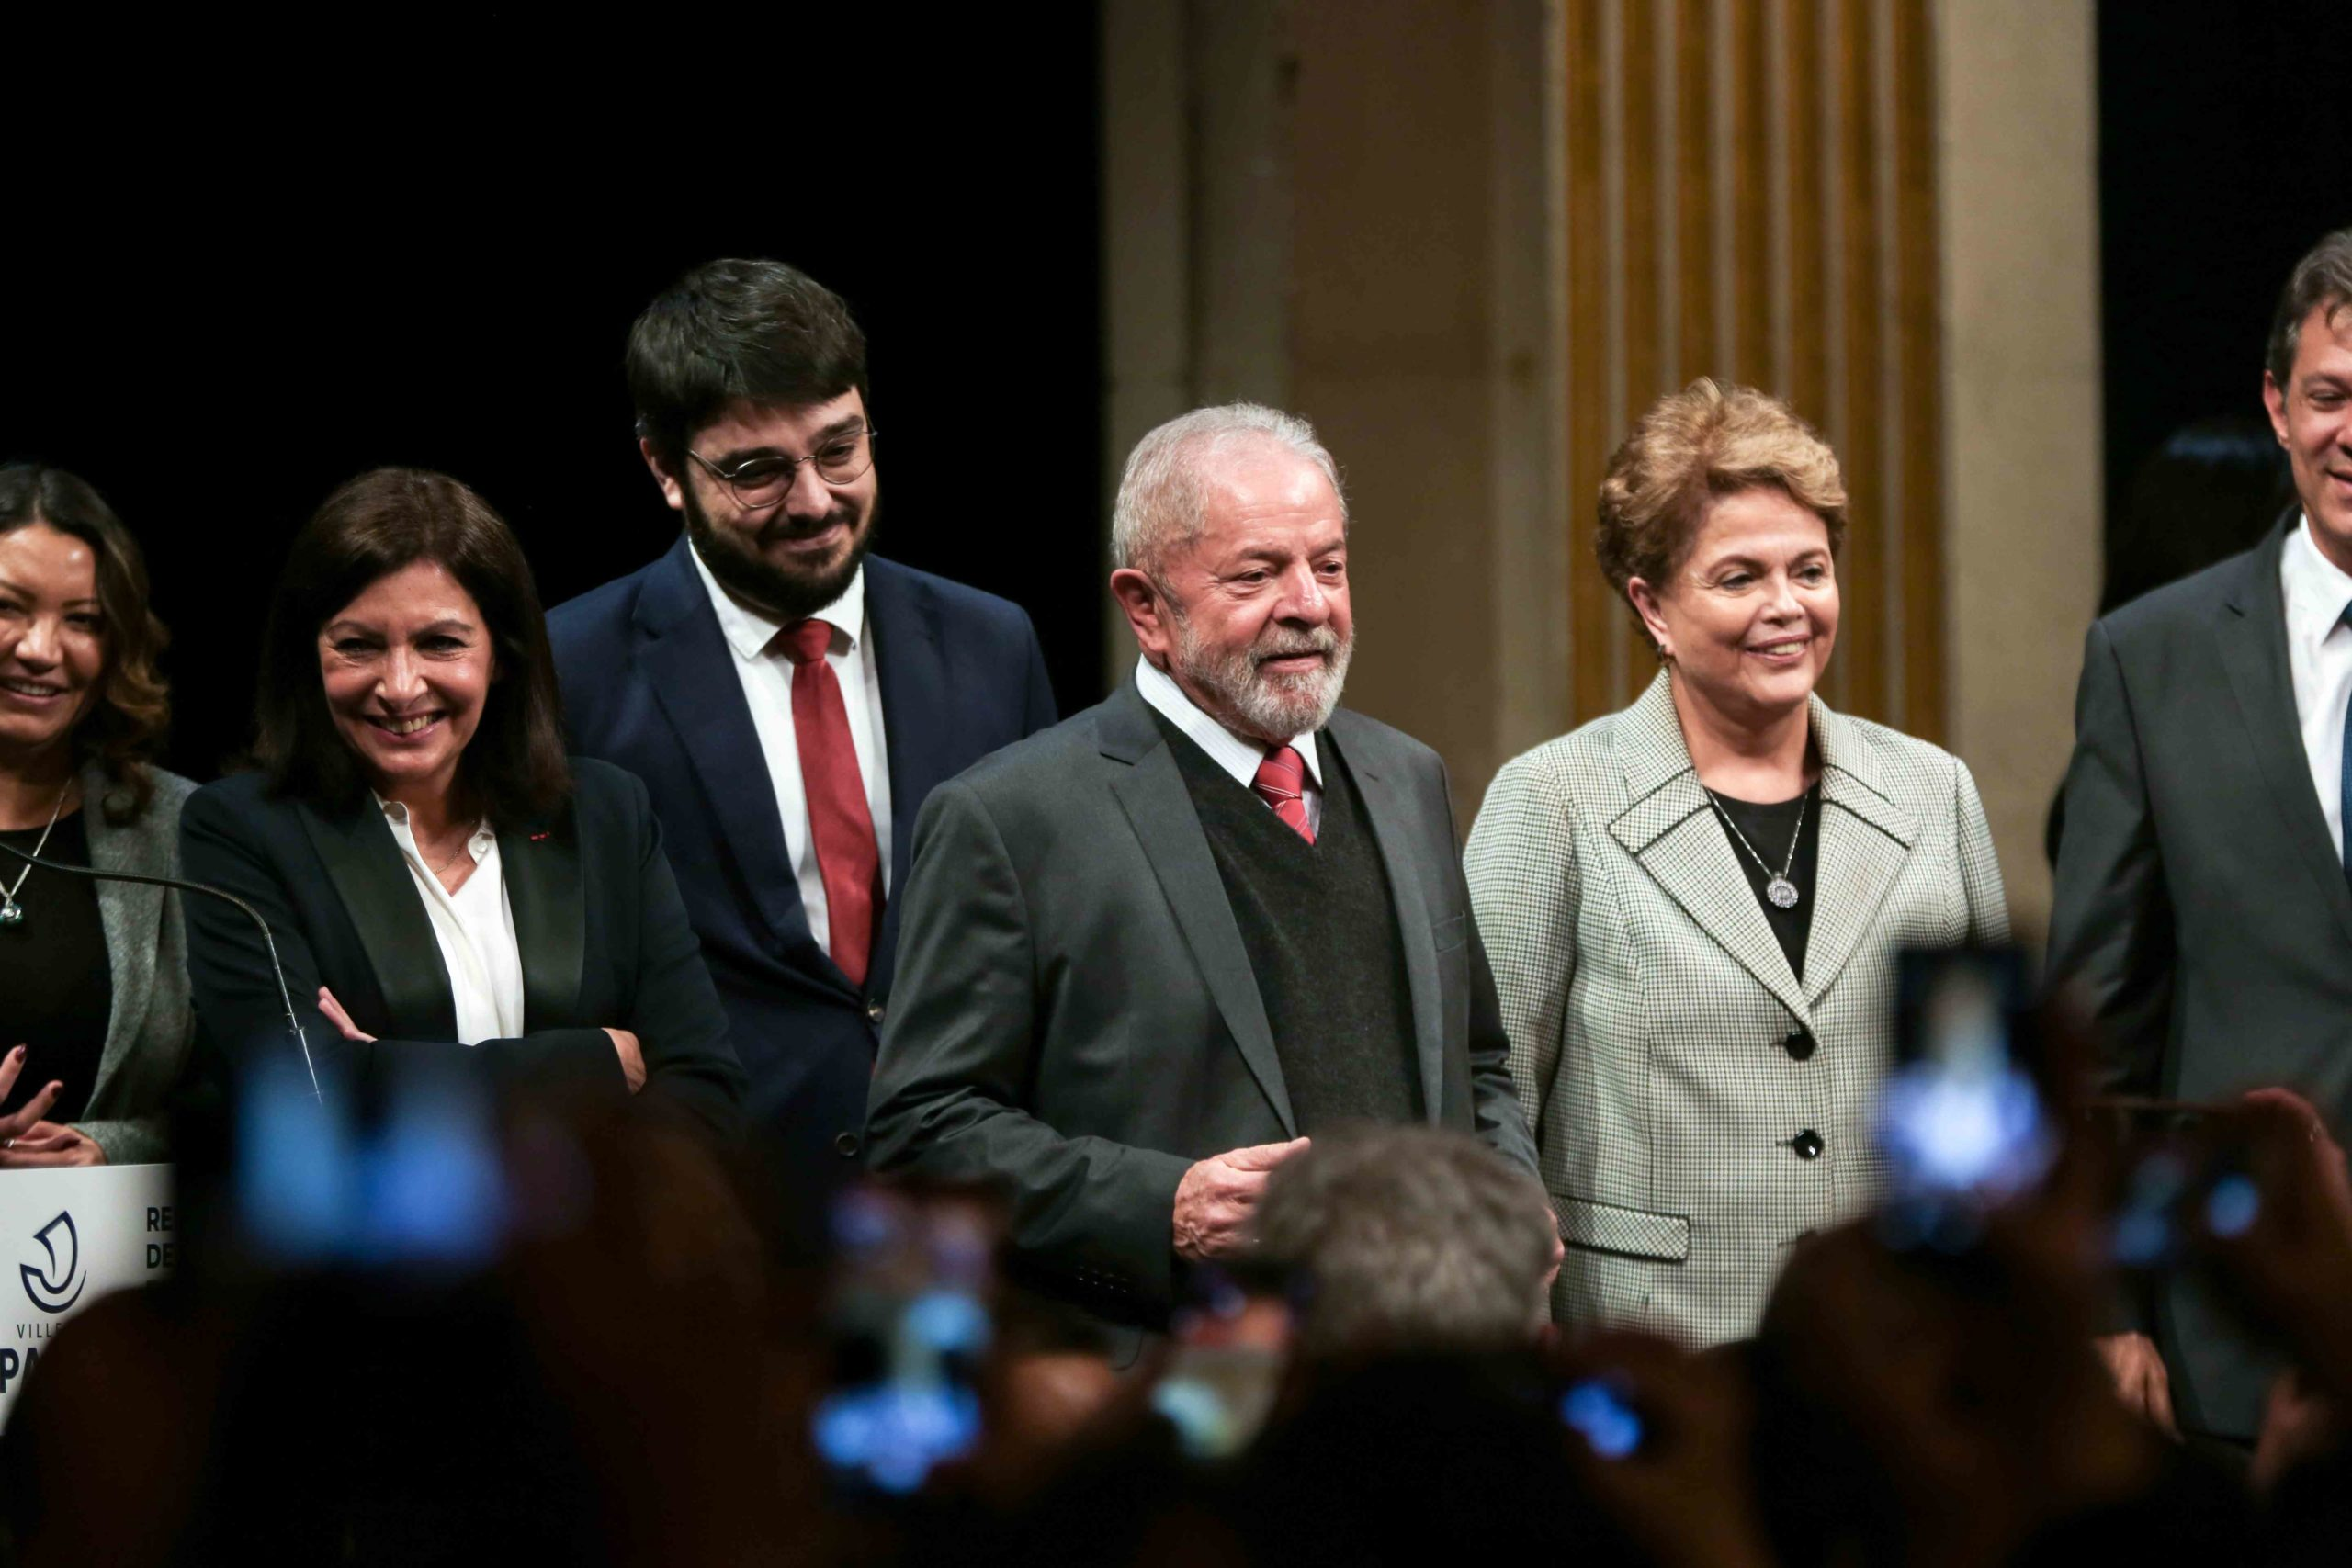 Former Brazilian president Luiz Inacio Lula da Silva (2R), Paris Mayor and candidate for re-election Anne Hidalgo (1st L) and Former Brazilian president Dilma Rousseff (1st R)), salute the crowd as they take part in a ceremony at the City Hall of Paris, on